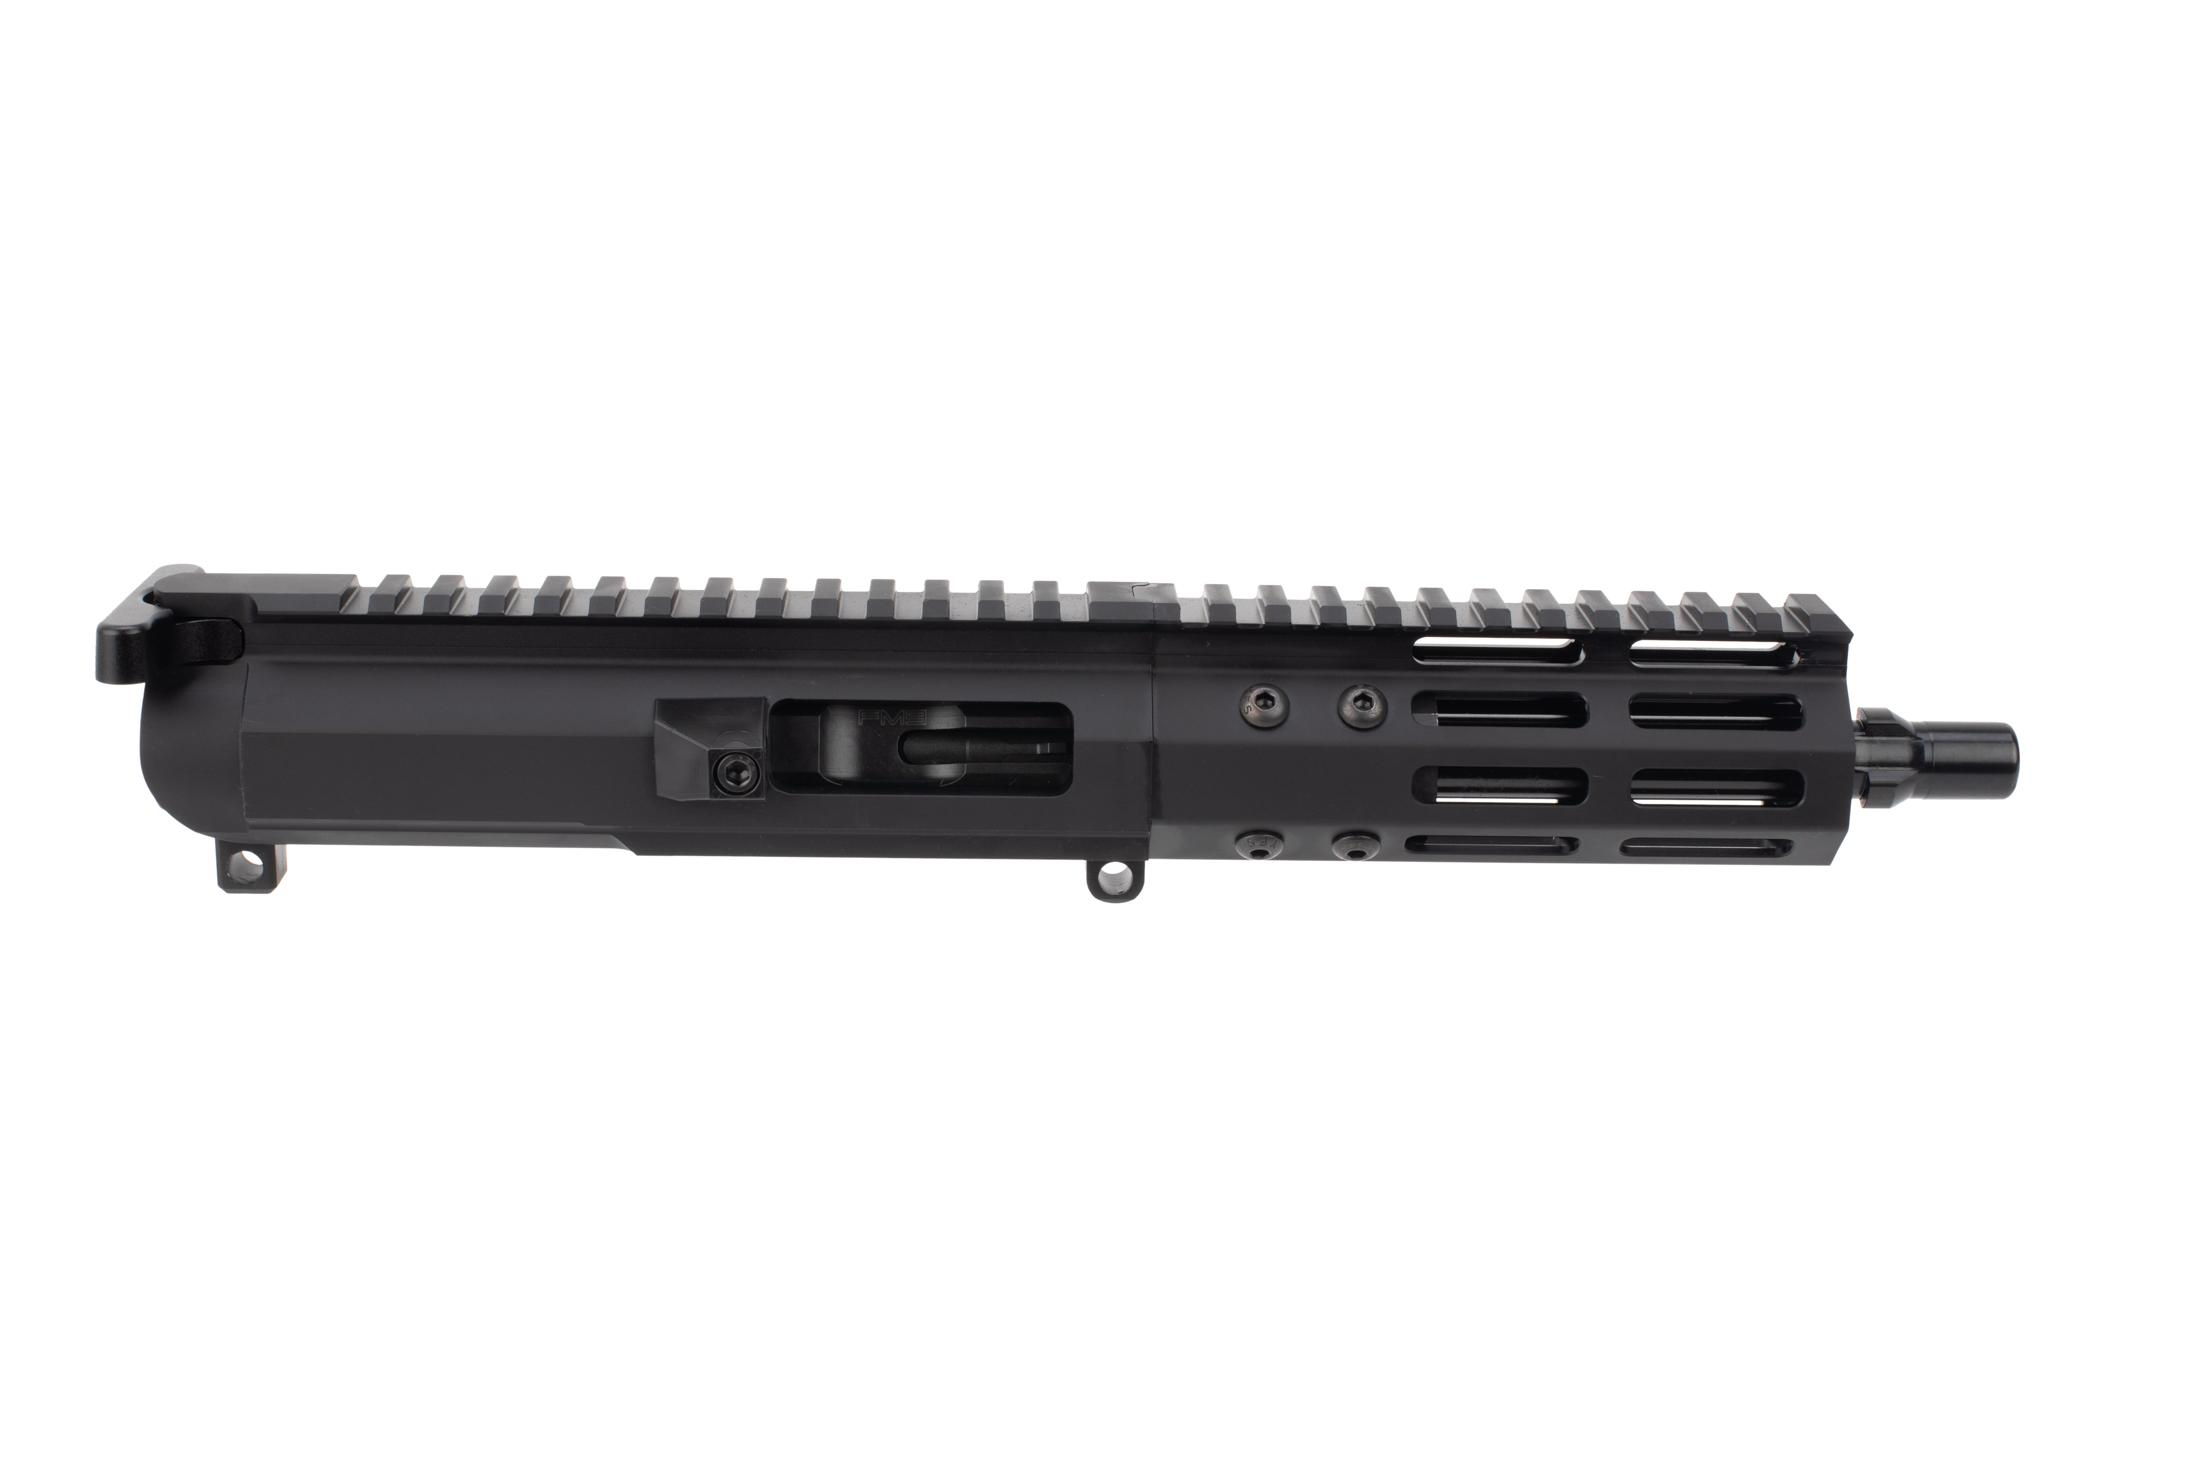 Foxtrot Mike Products complete Primary Arms exclusive upper wih a 7 tri-lug barrel in 9x19mm